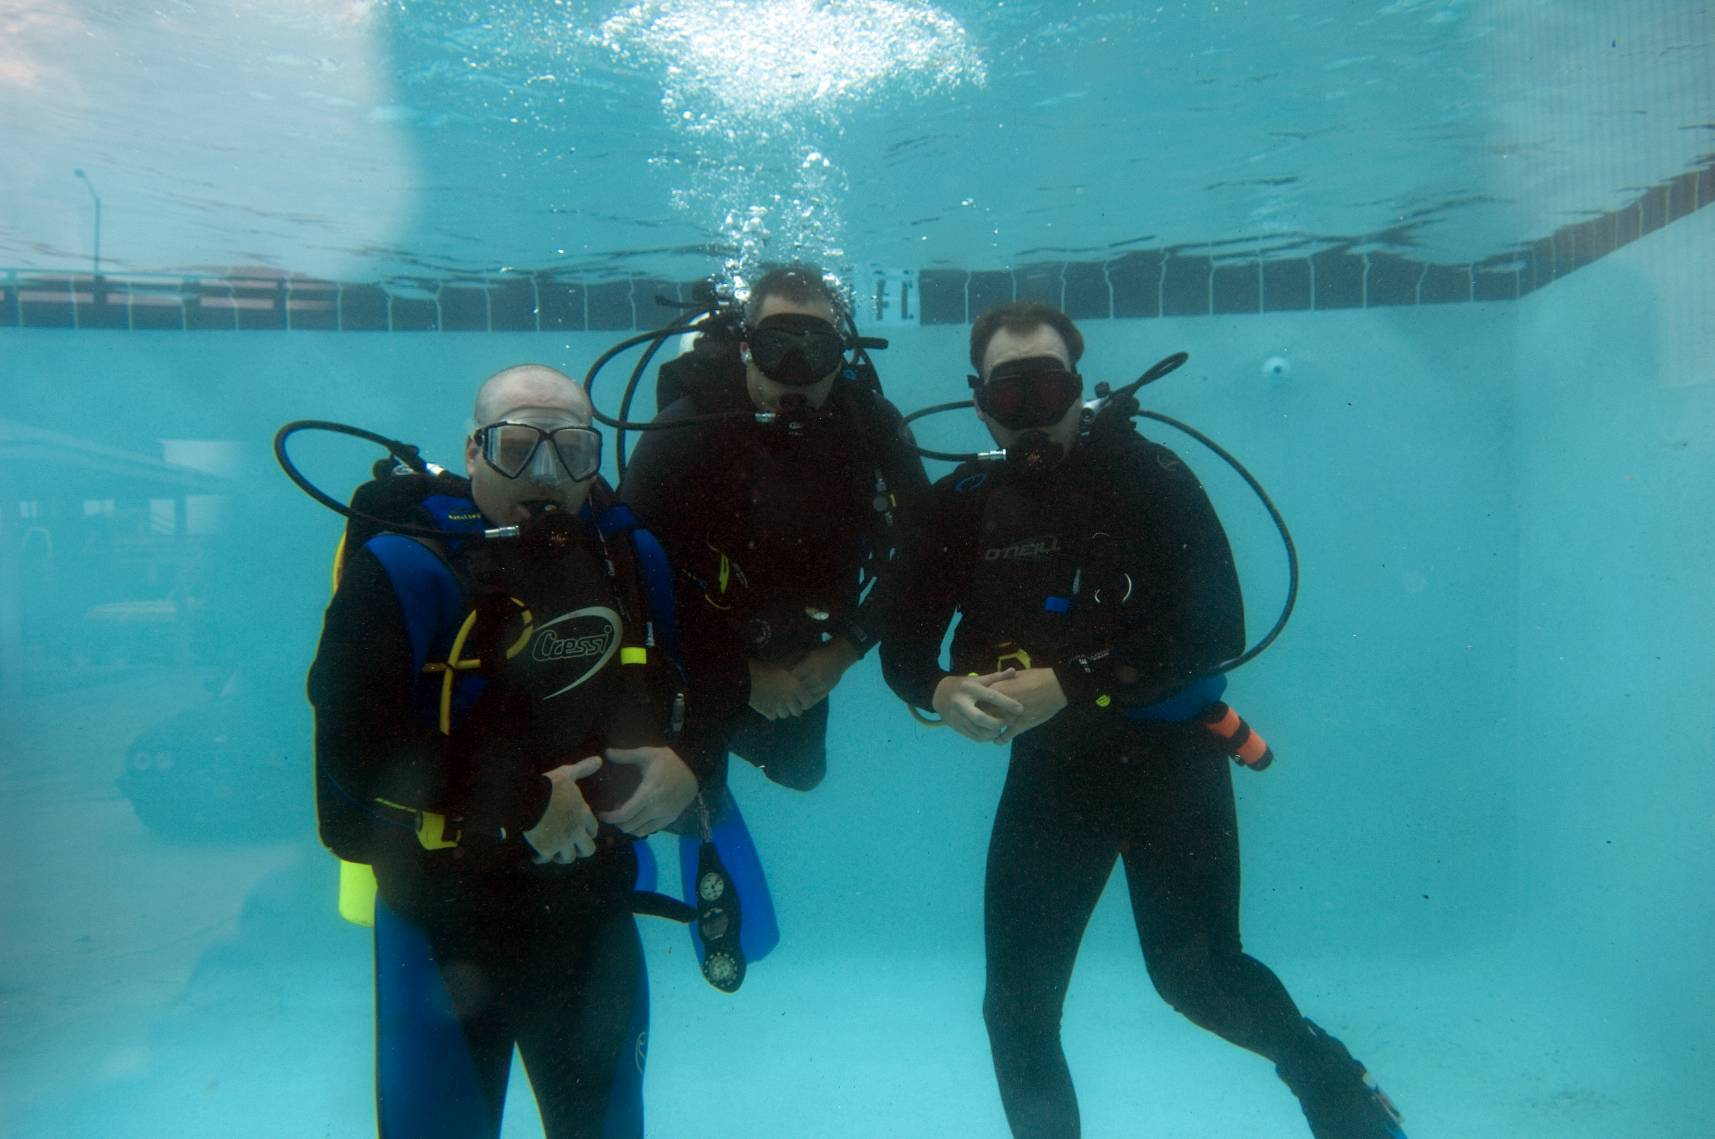 Dive training at CDA Technical Institute